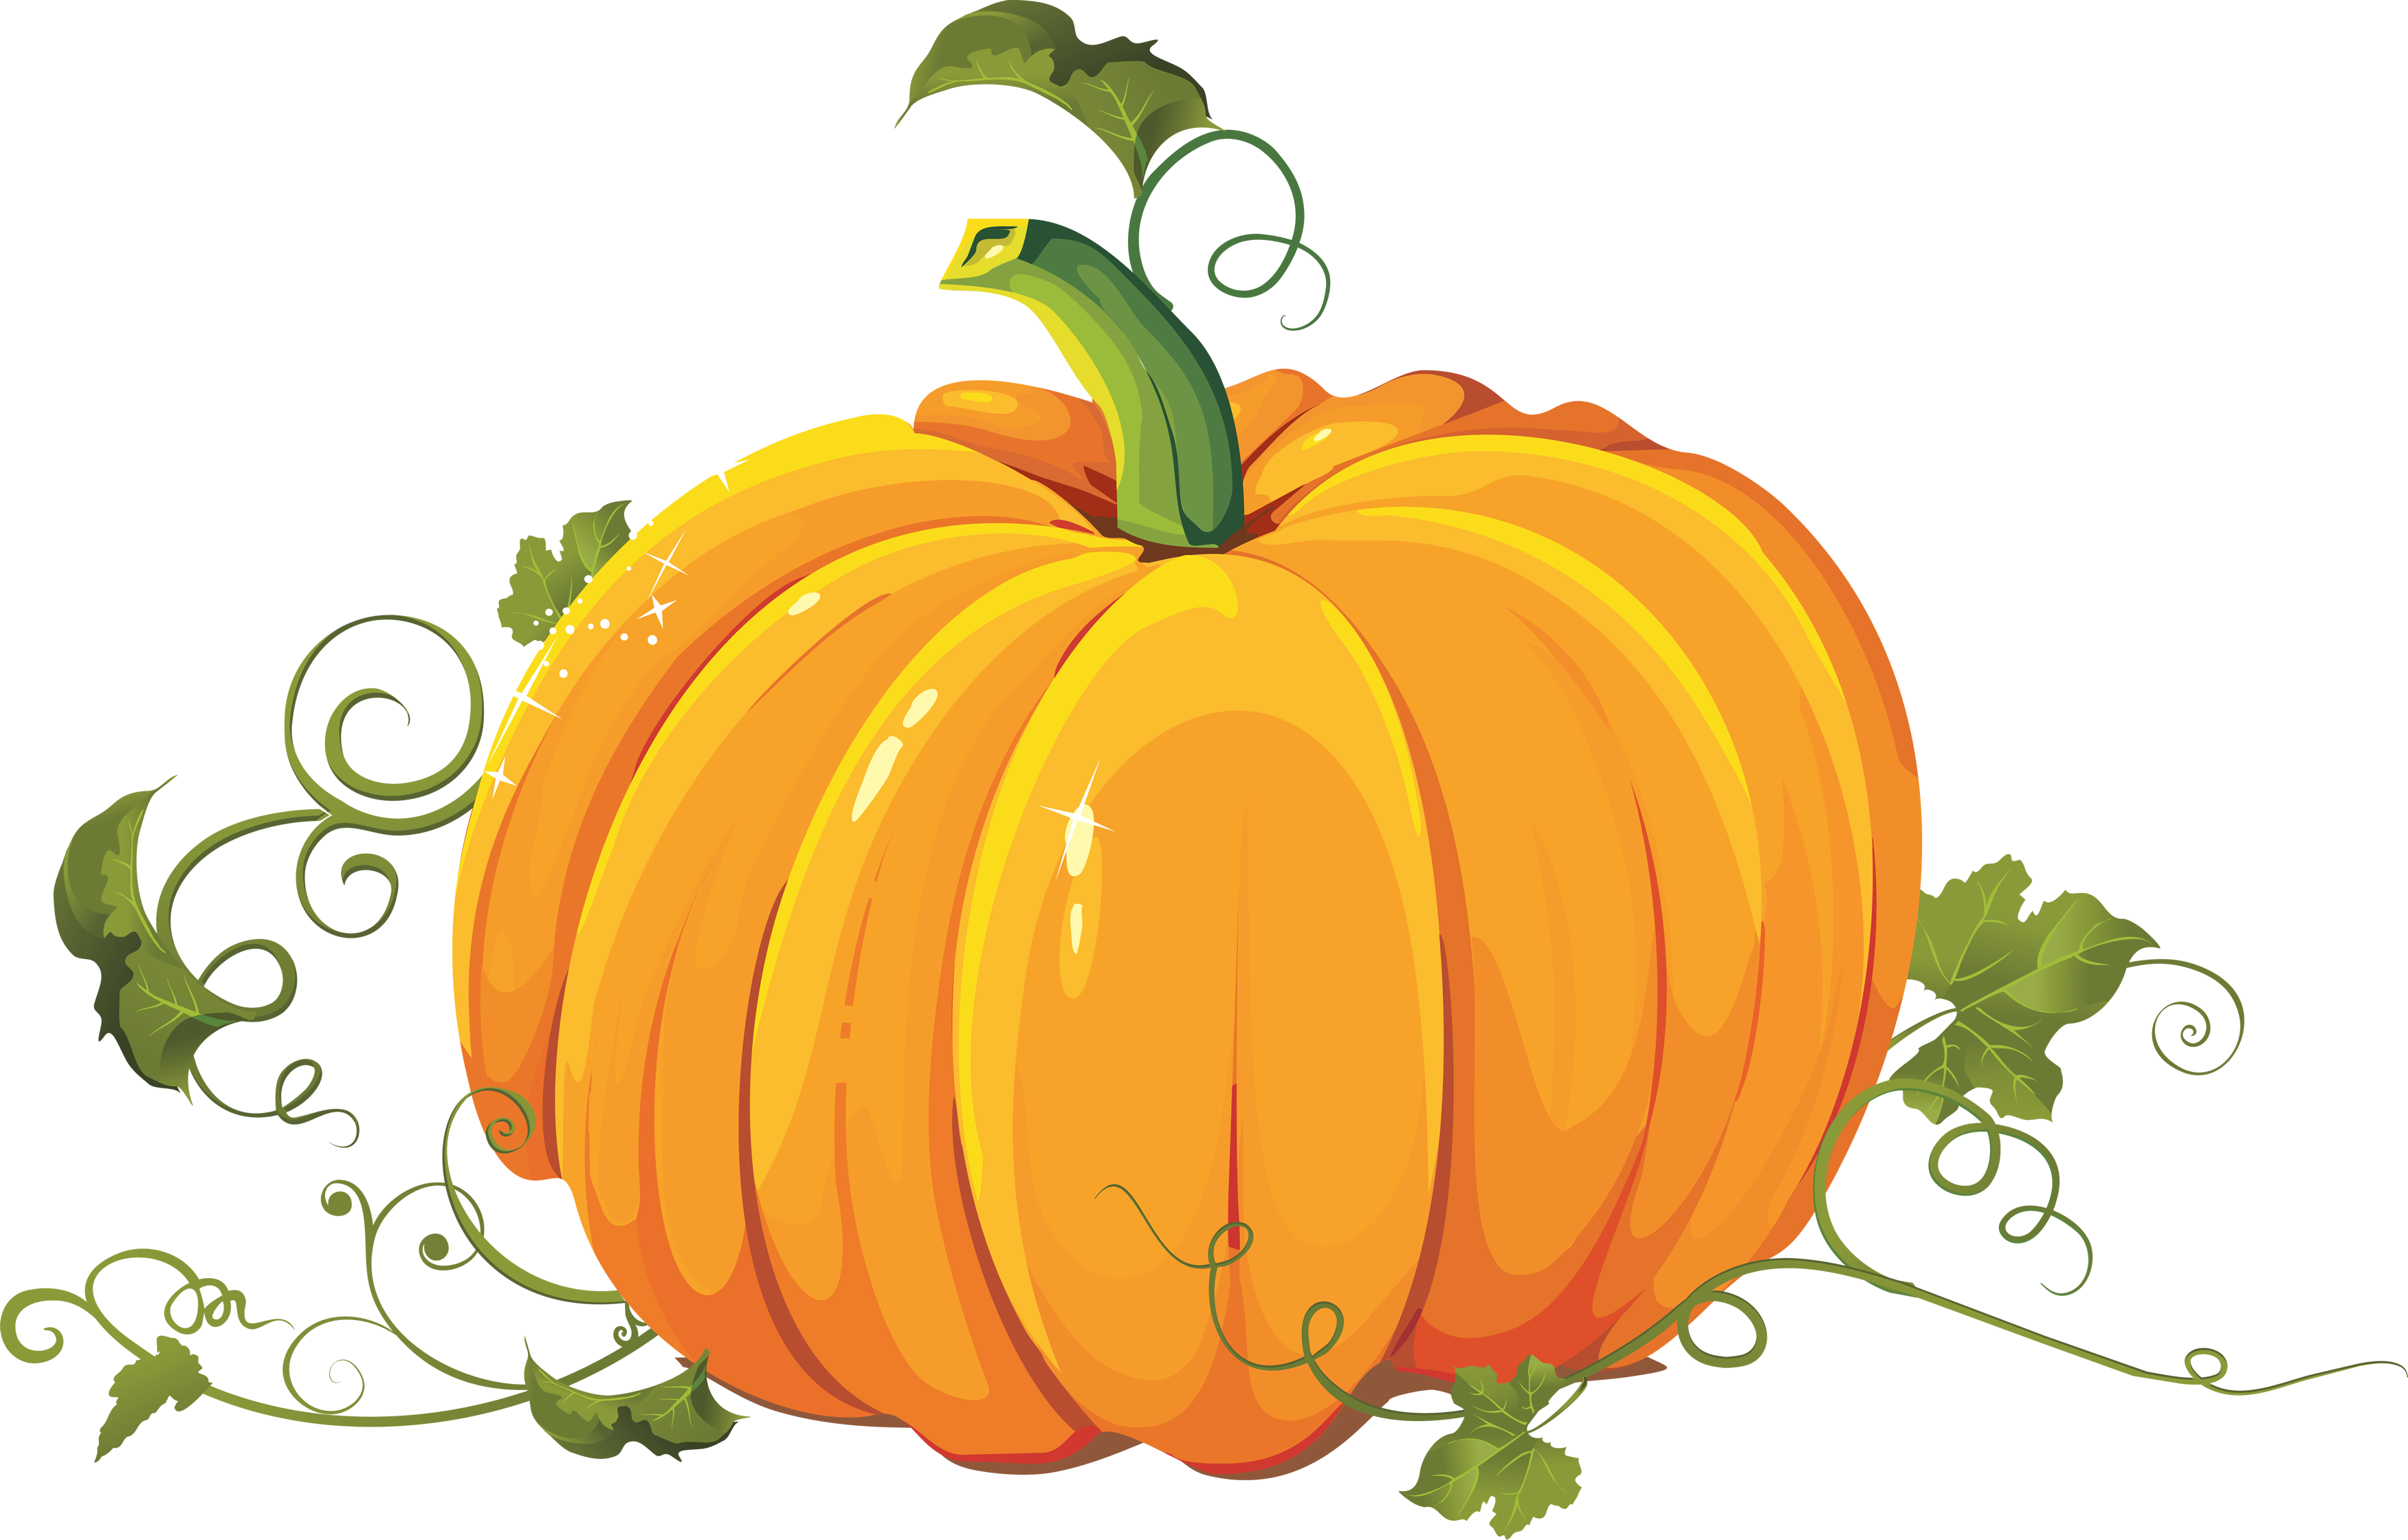 Pumpkin .png. Png images free download